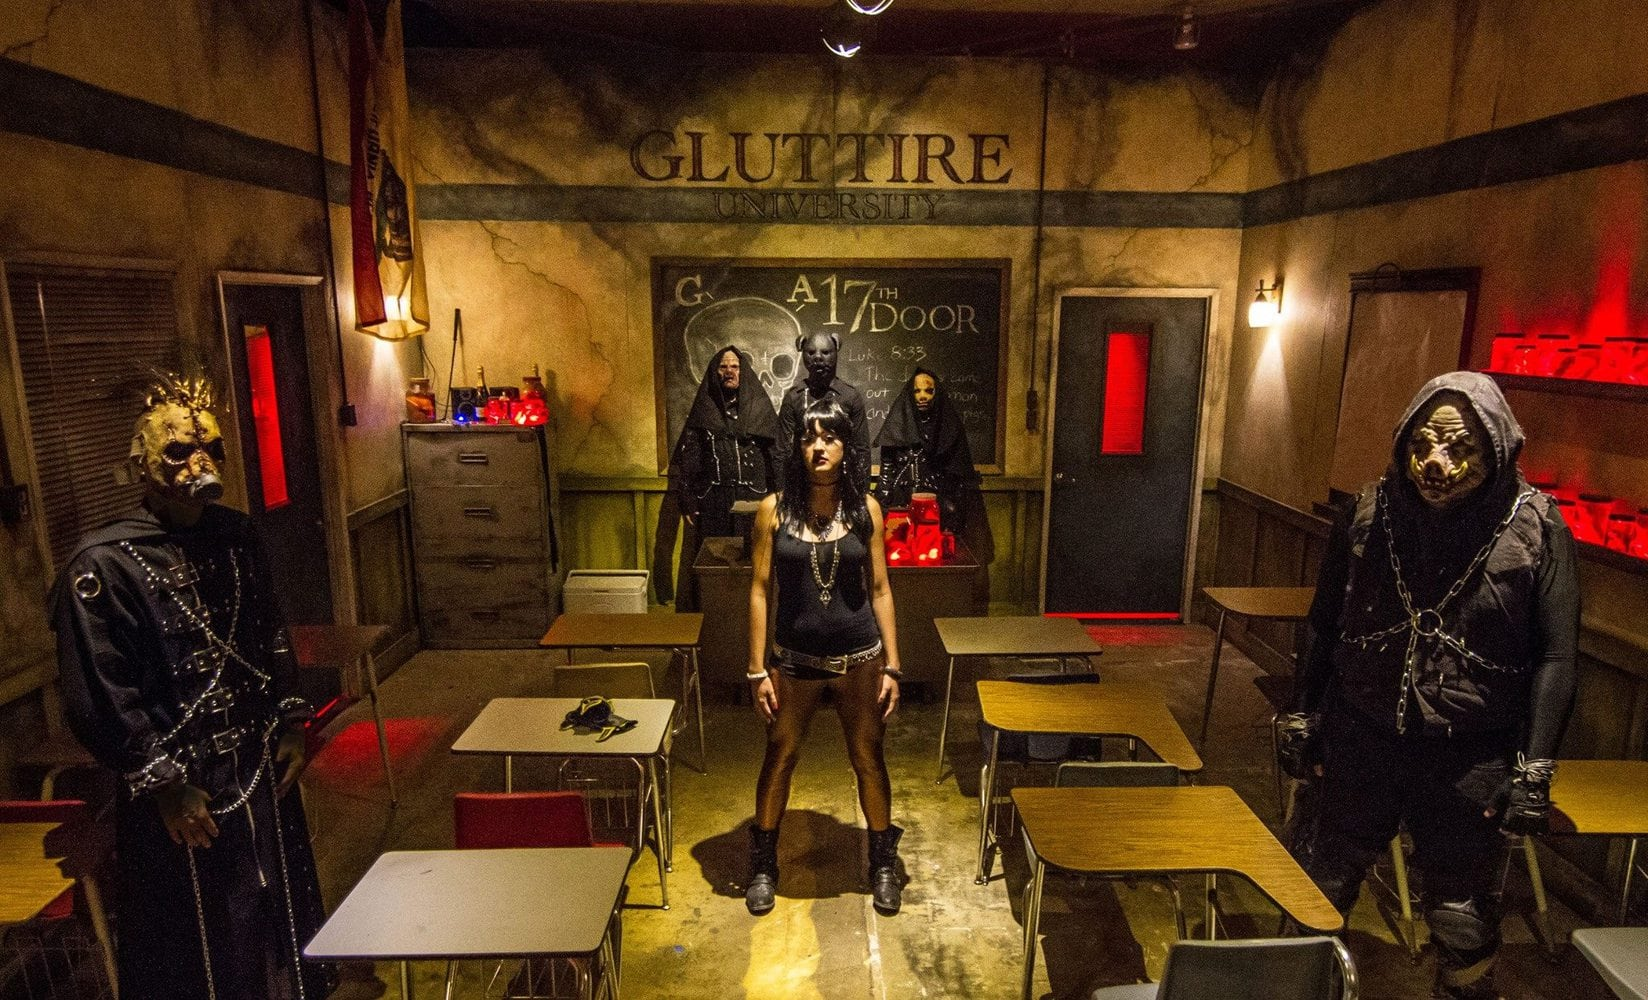 17th door - haunted house - extreme - tustin - immersive theater